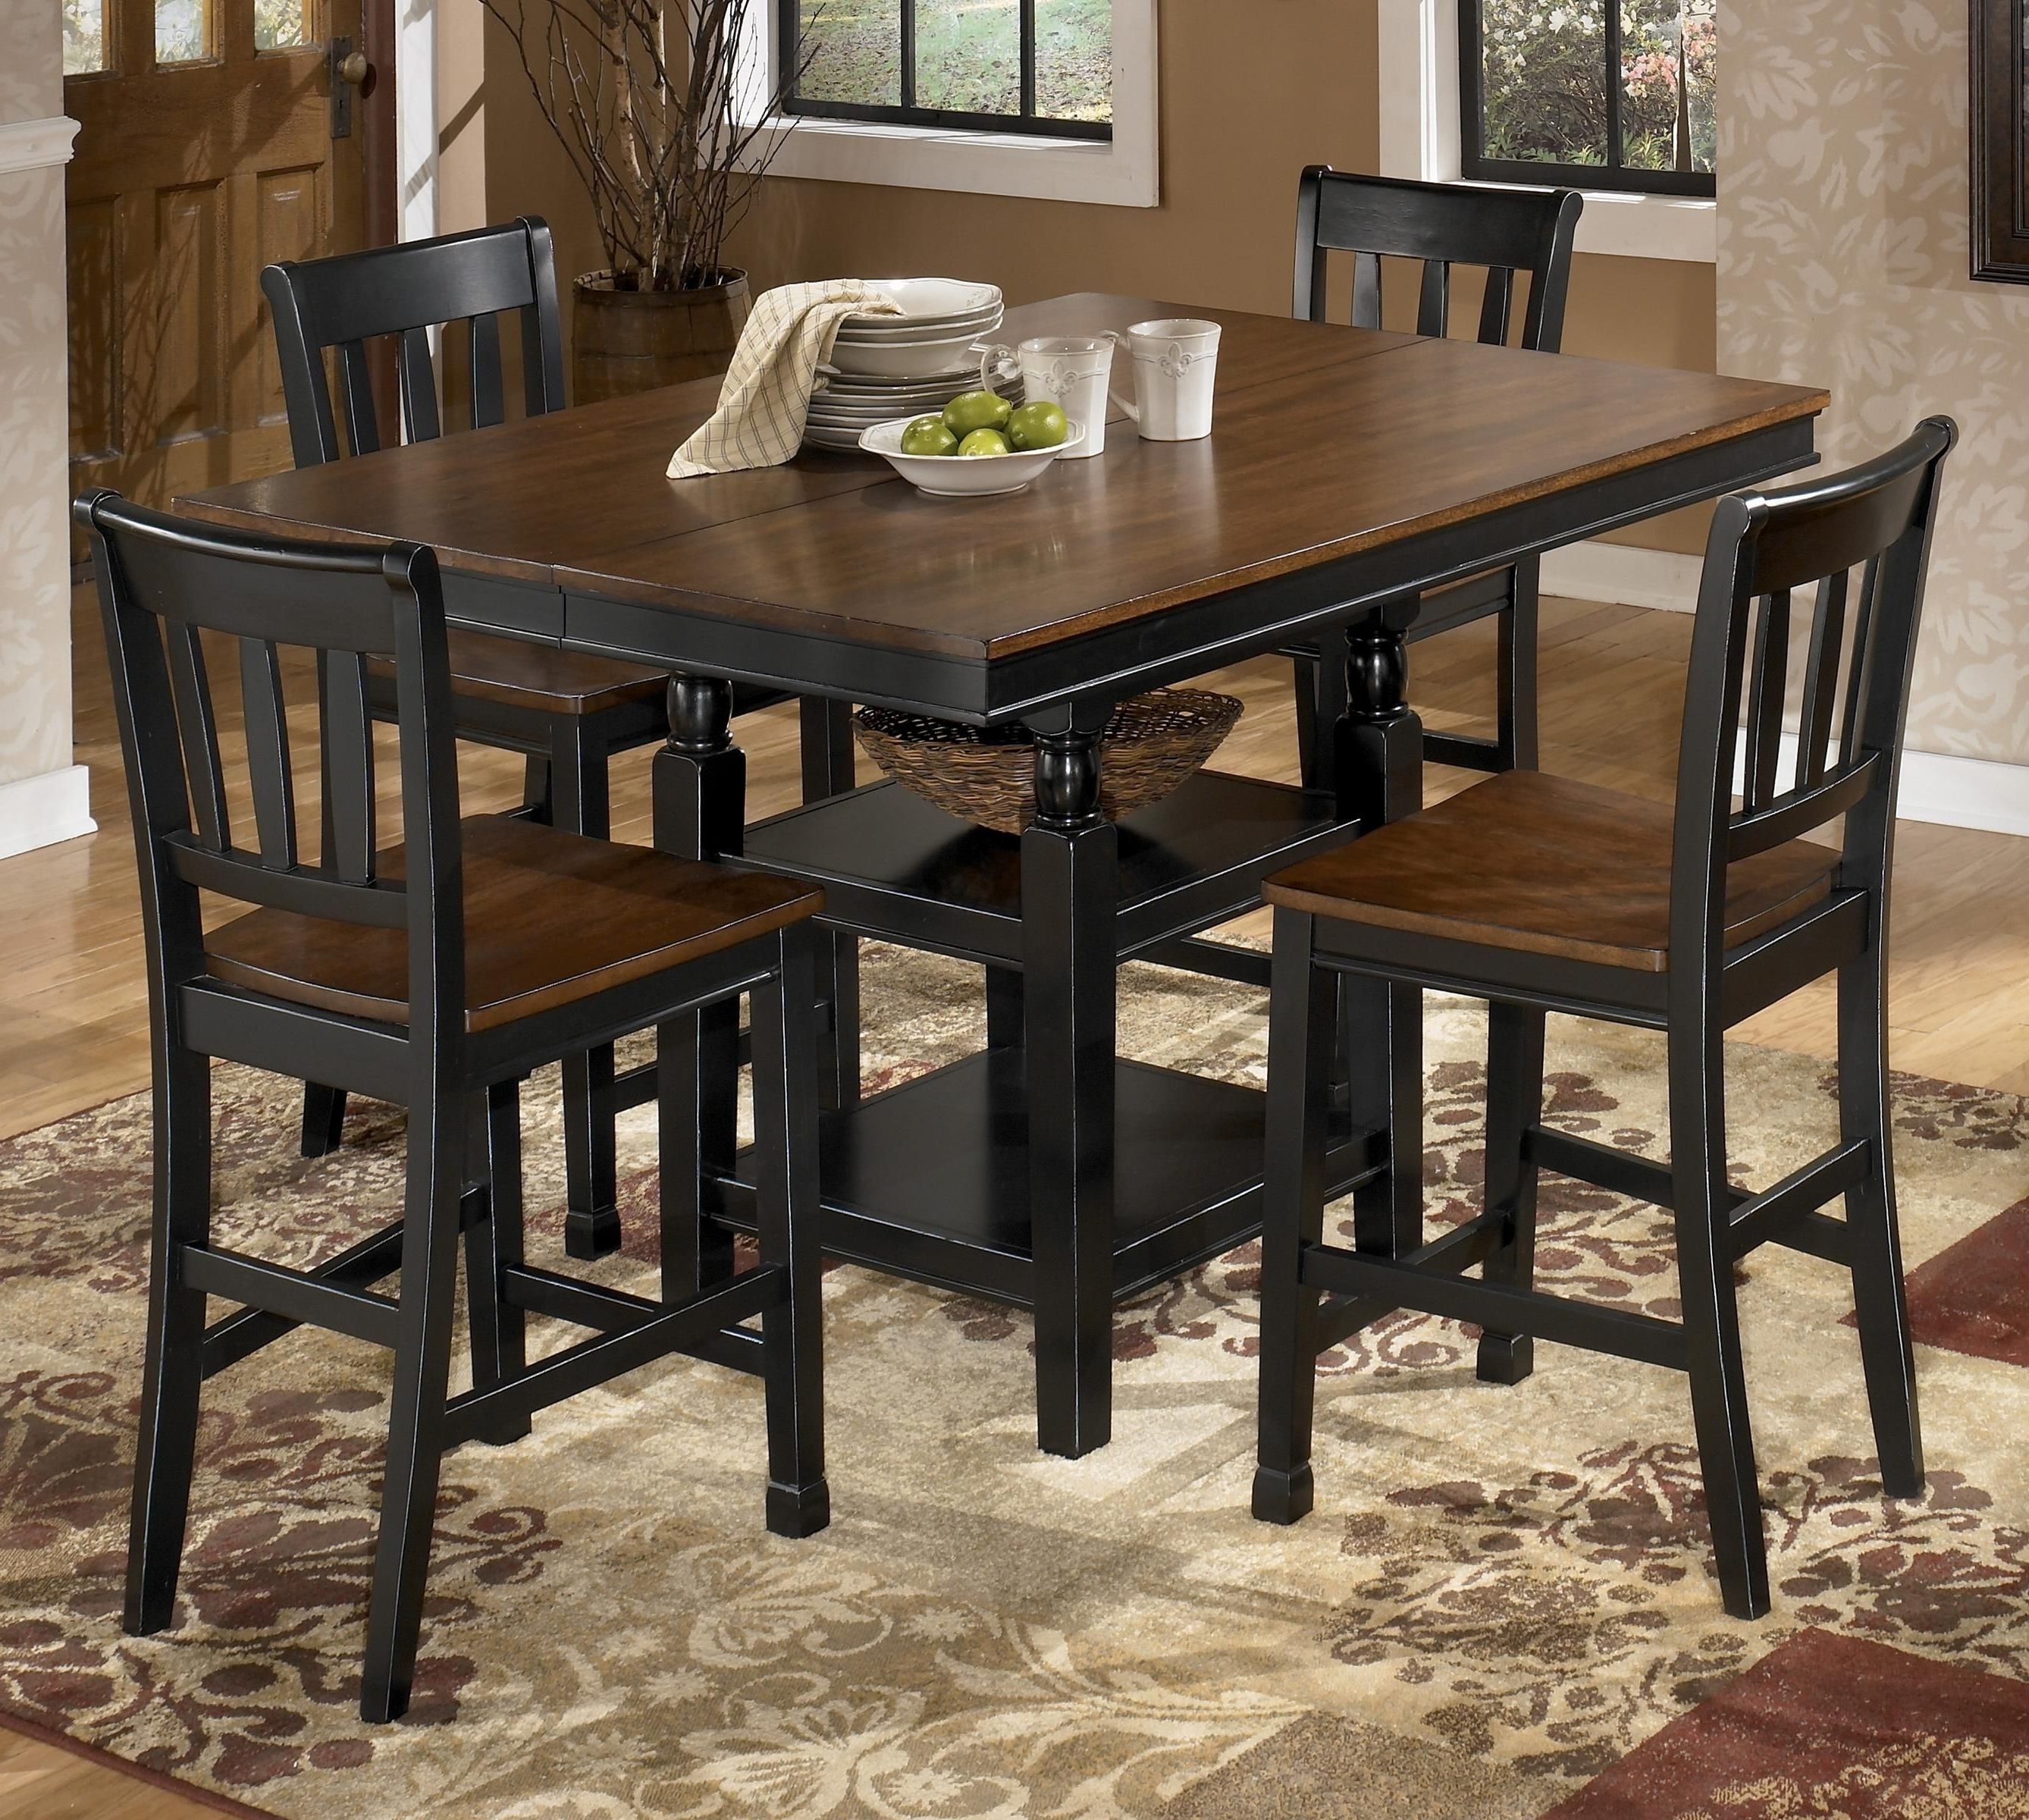 Jaxon Grey 5 Piece Round Extension Dining Sets With Wood Chairs with regard to Recent Ashton Round Pedestal Dining Table Elegant Kitchen Dining Area